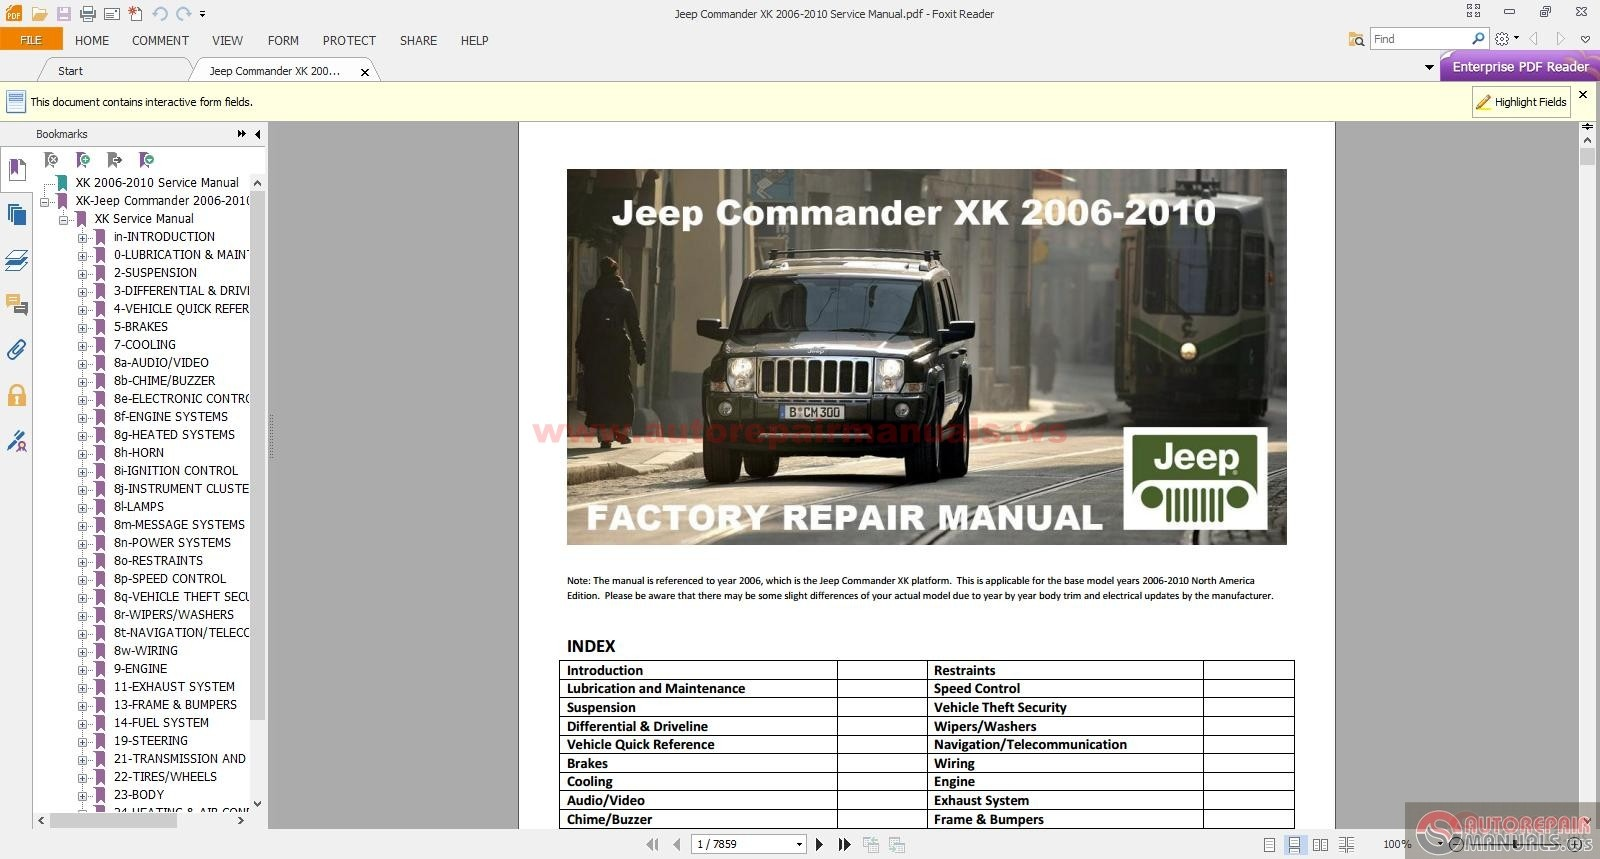 Jeep Commander Xk 2006-2010 Service Manual